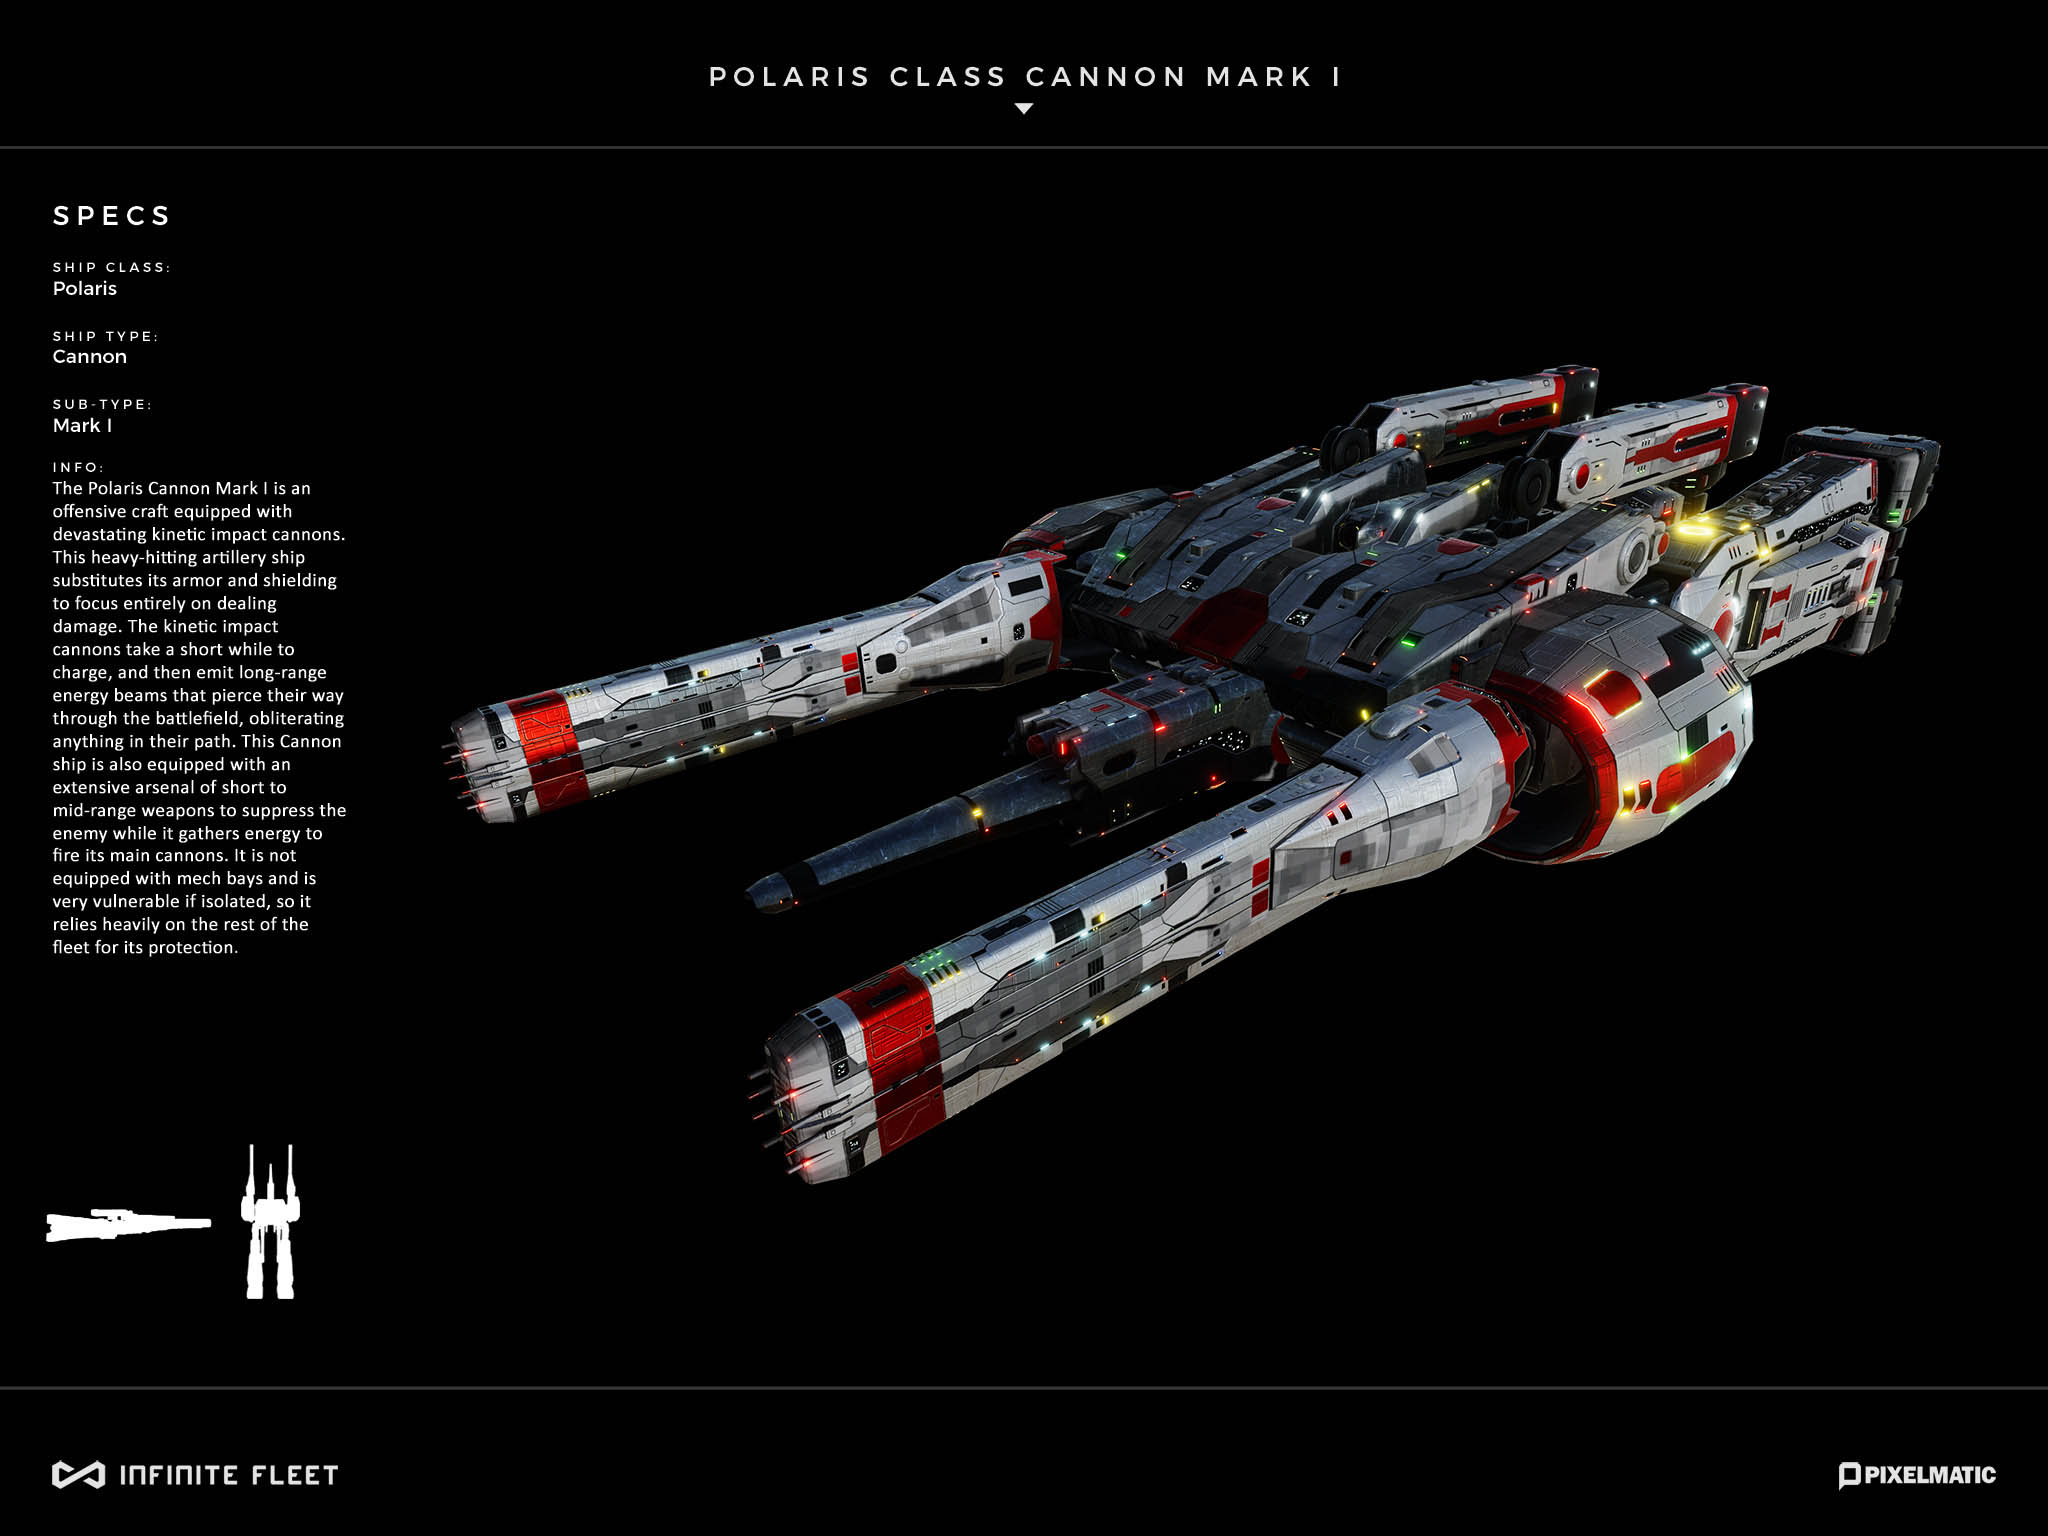 cannon spaceship model